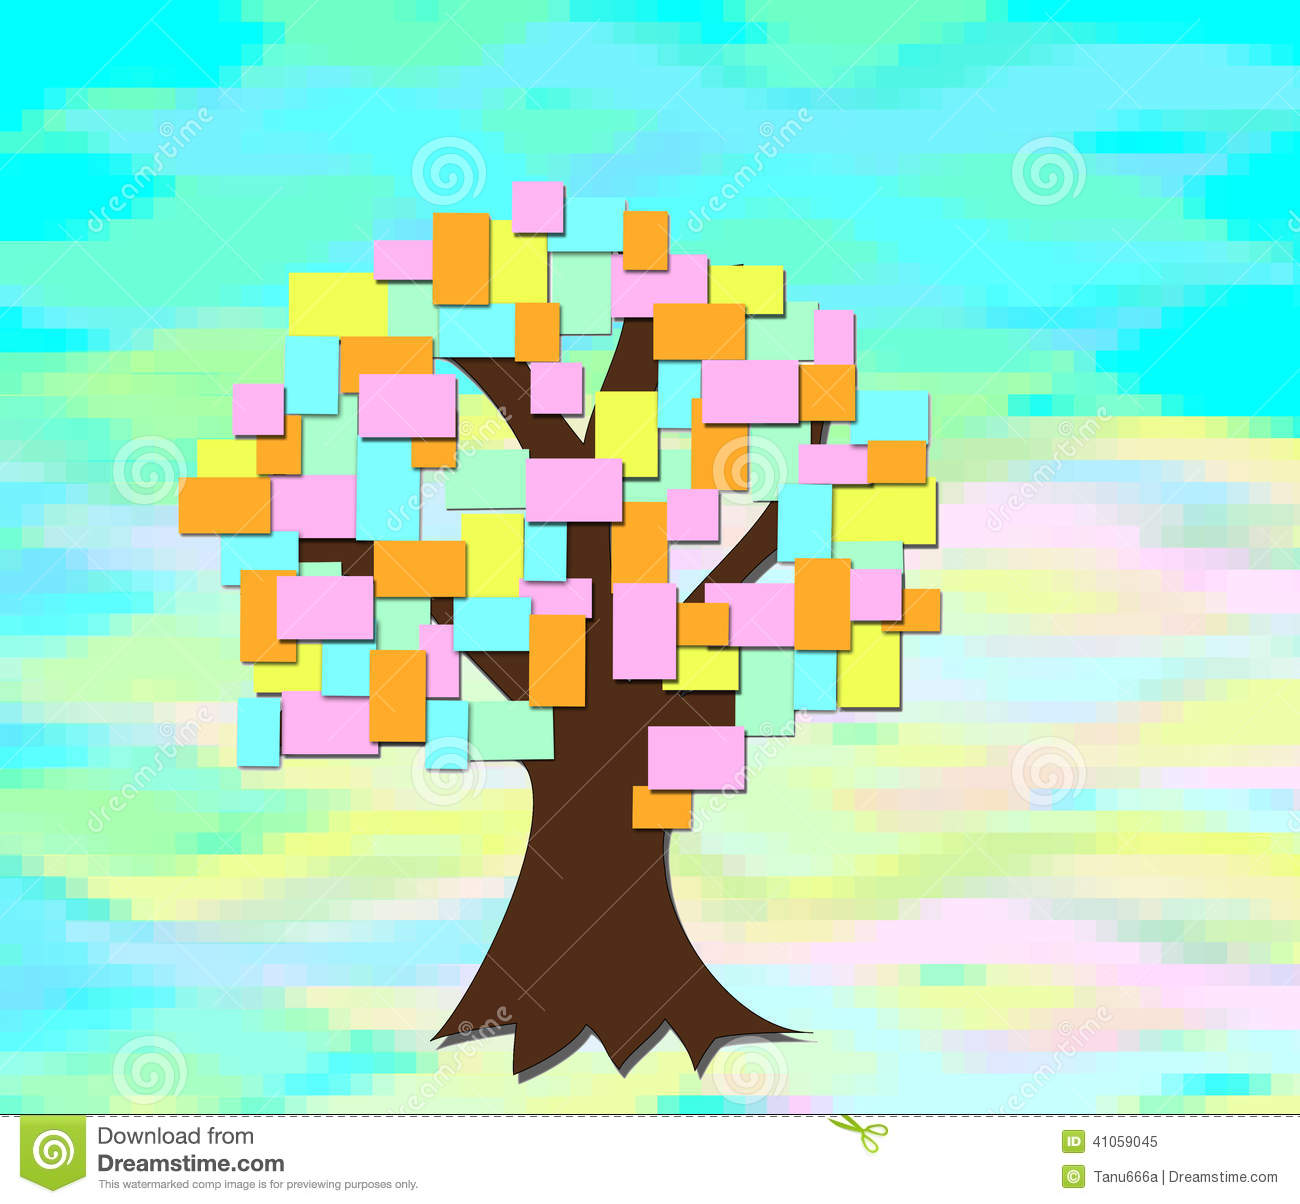 the tree grows with colored sheets of paper stock illustration